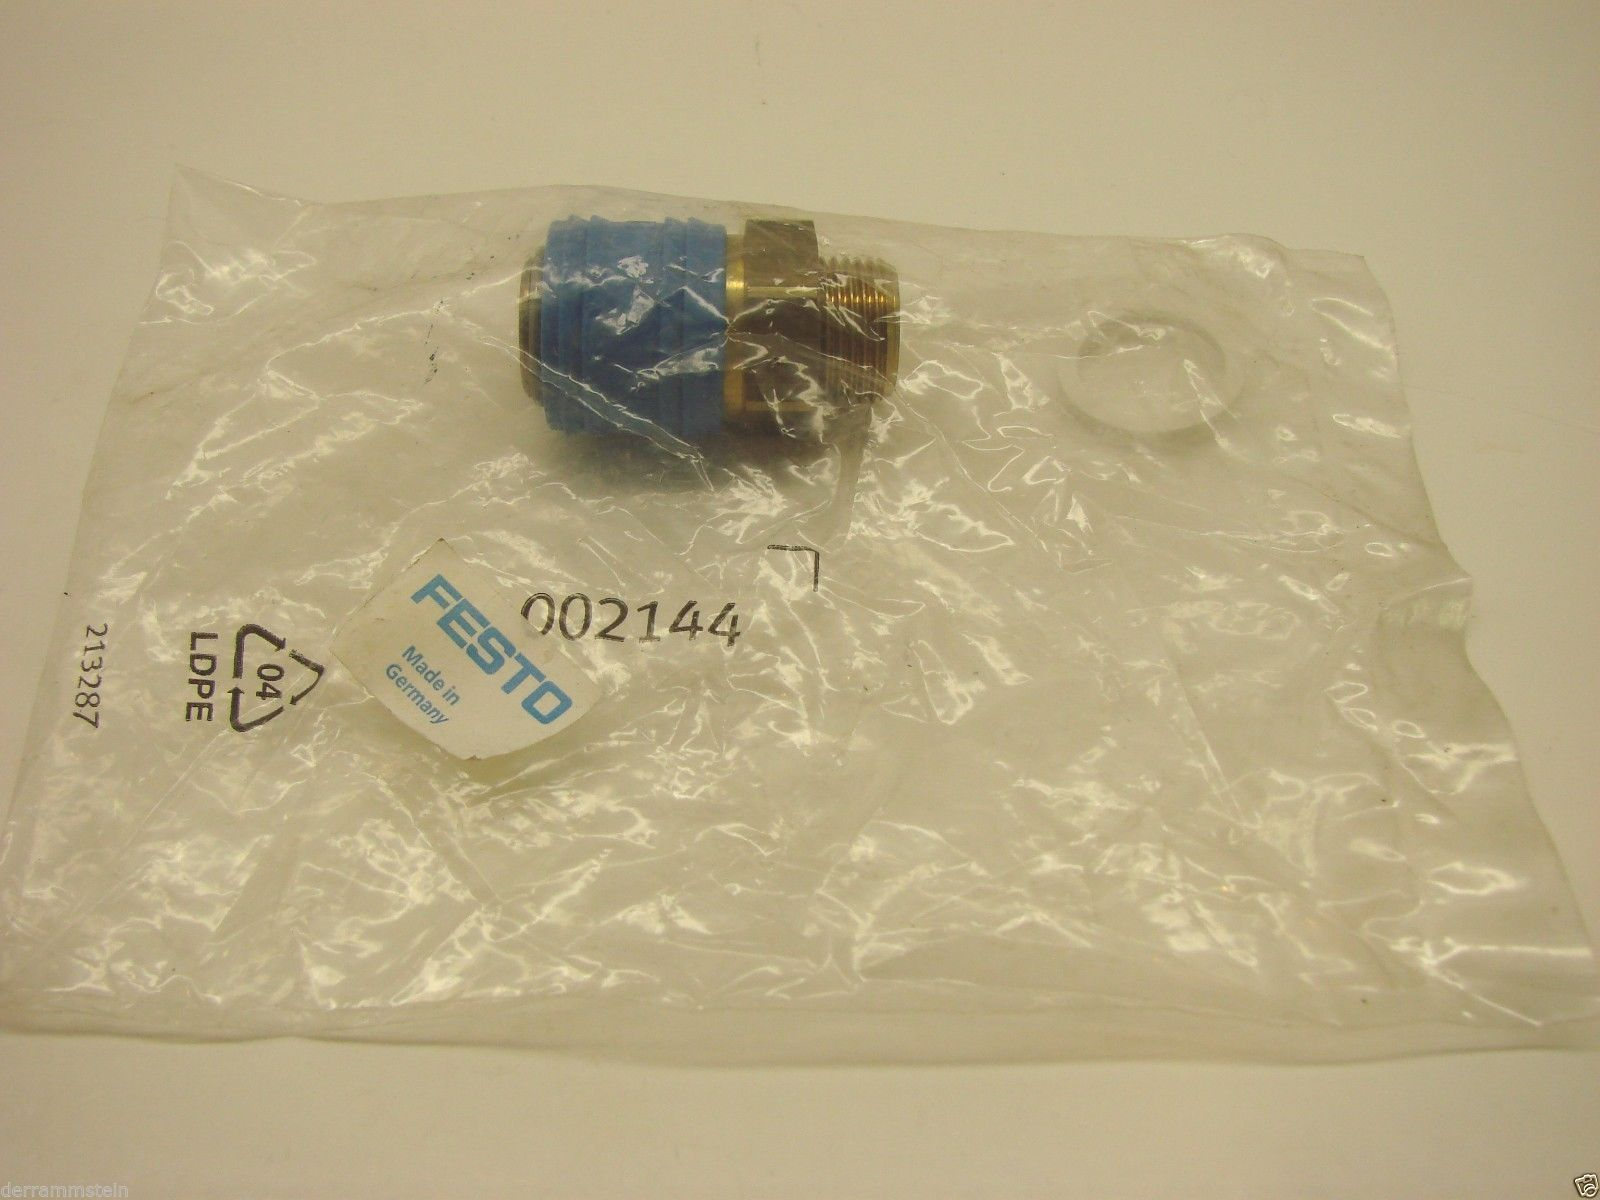 FESTO CONNECTOR 002144 Sealed New In Package  b59